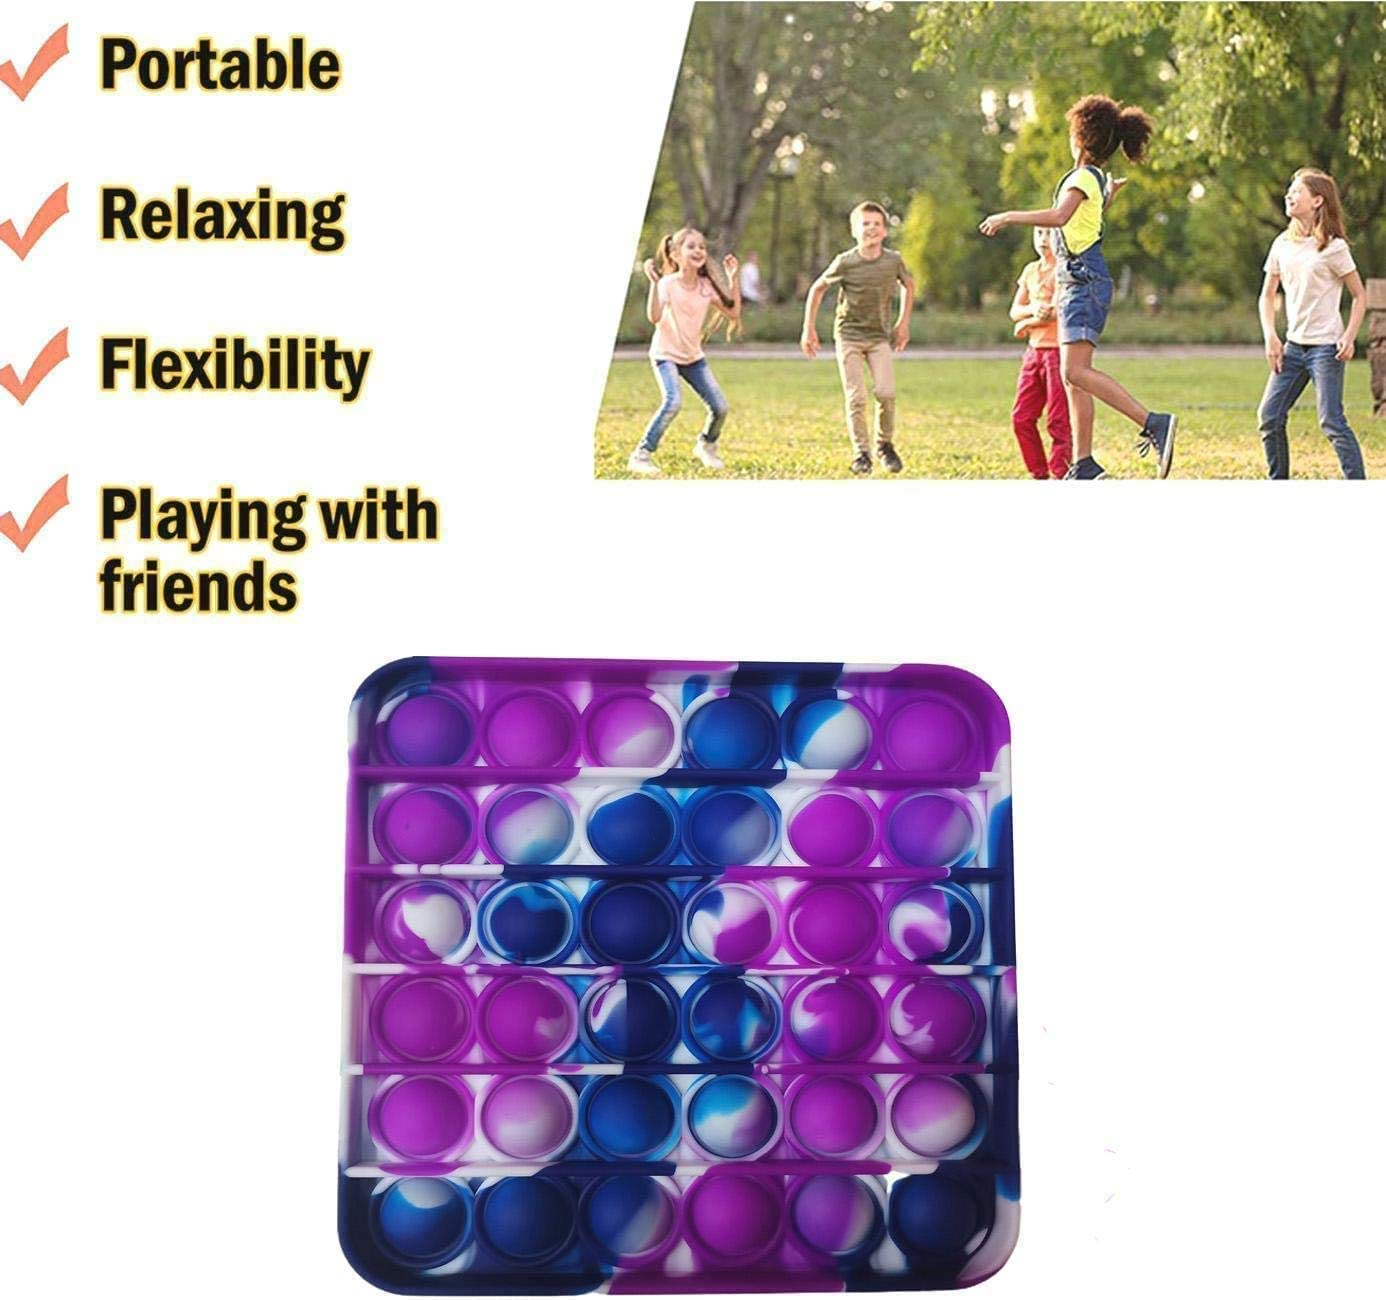 Round Shape Logical Thinking and Stress Relief from Autism Suitable for Stress Relief Training Jesokiibo 3 Push-Bubble Decompression Toys Squeeze Bubble Sensory Toys Durable Soft Silicone Toys